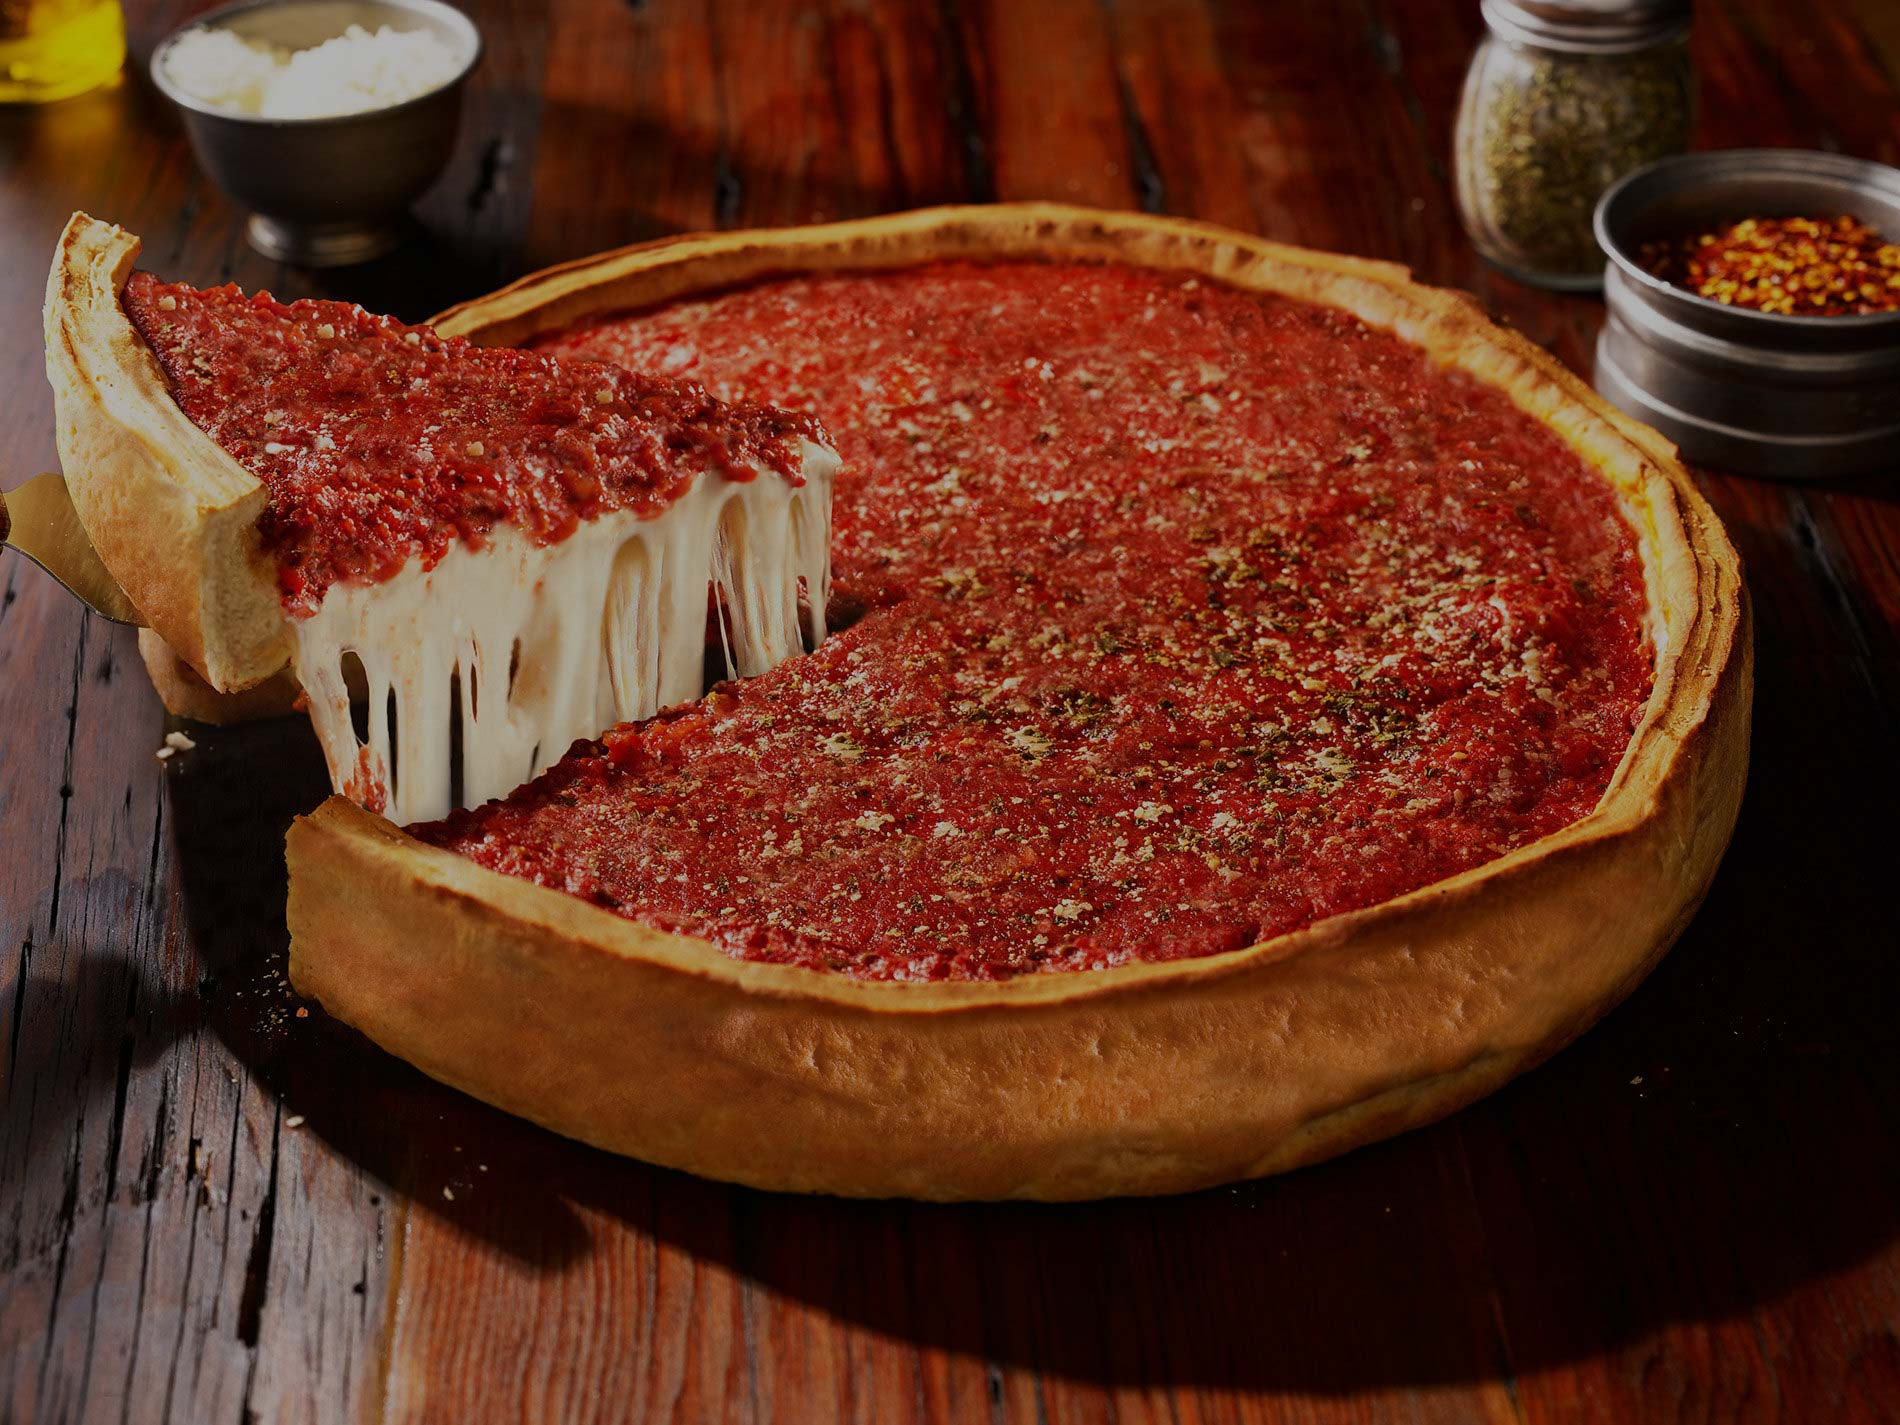 Giardino Prices Chicago S Famous Stuffed Deep Dish Pizza Giordano S